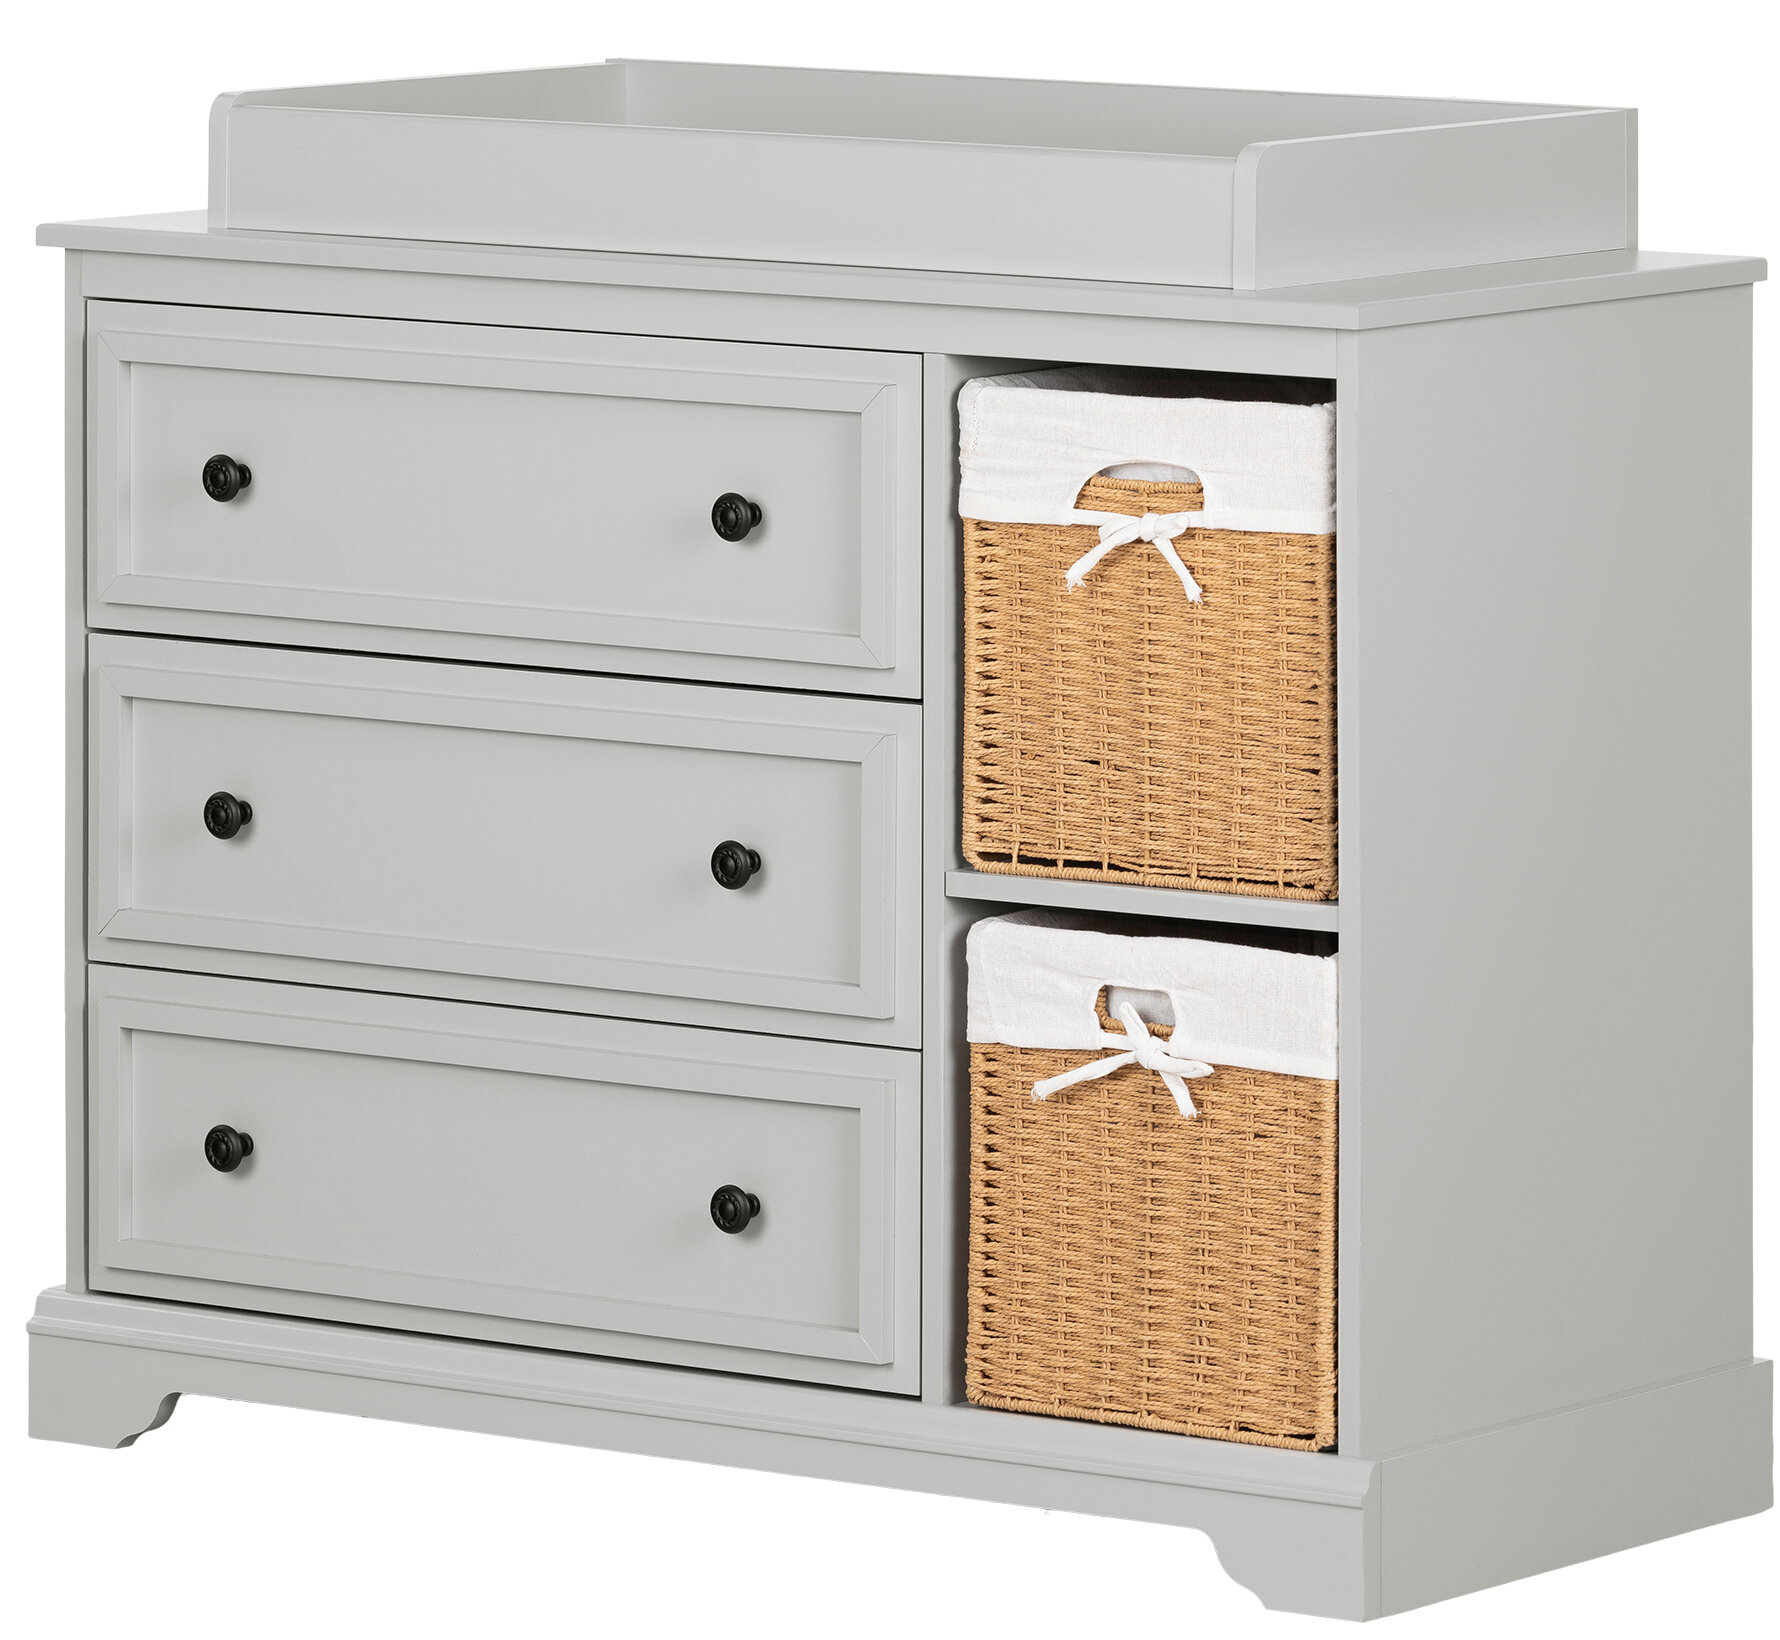 Image of: South Shore Kanal Changing Table Dresser With 2 Baskets Reviews Wayfair